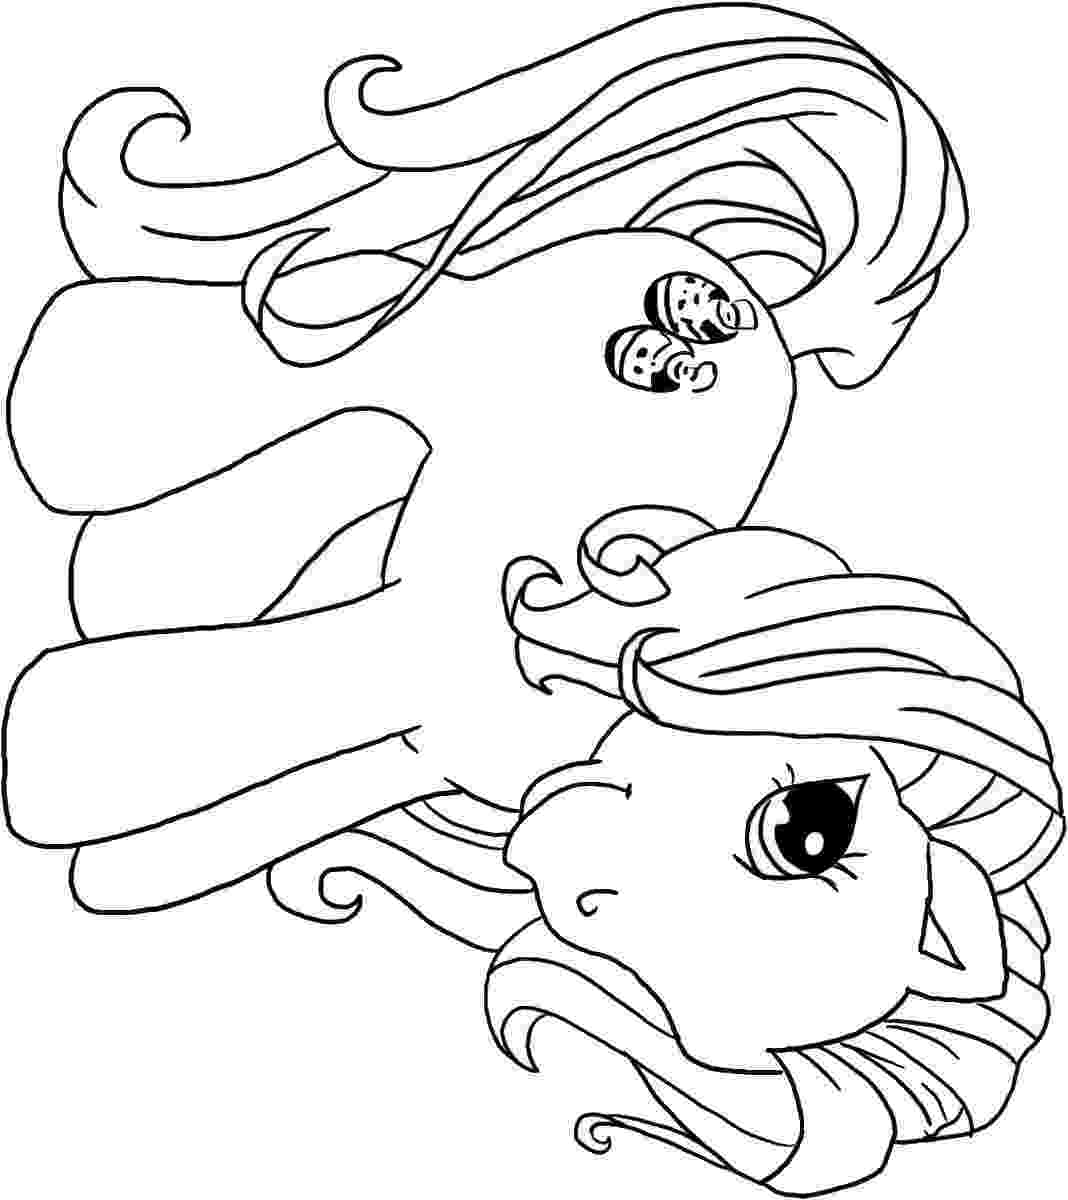 print out coloring pages insideoutdisgust coloring pages printable out pages print coloring